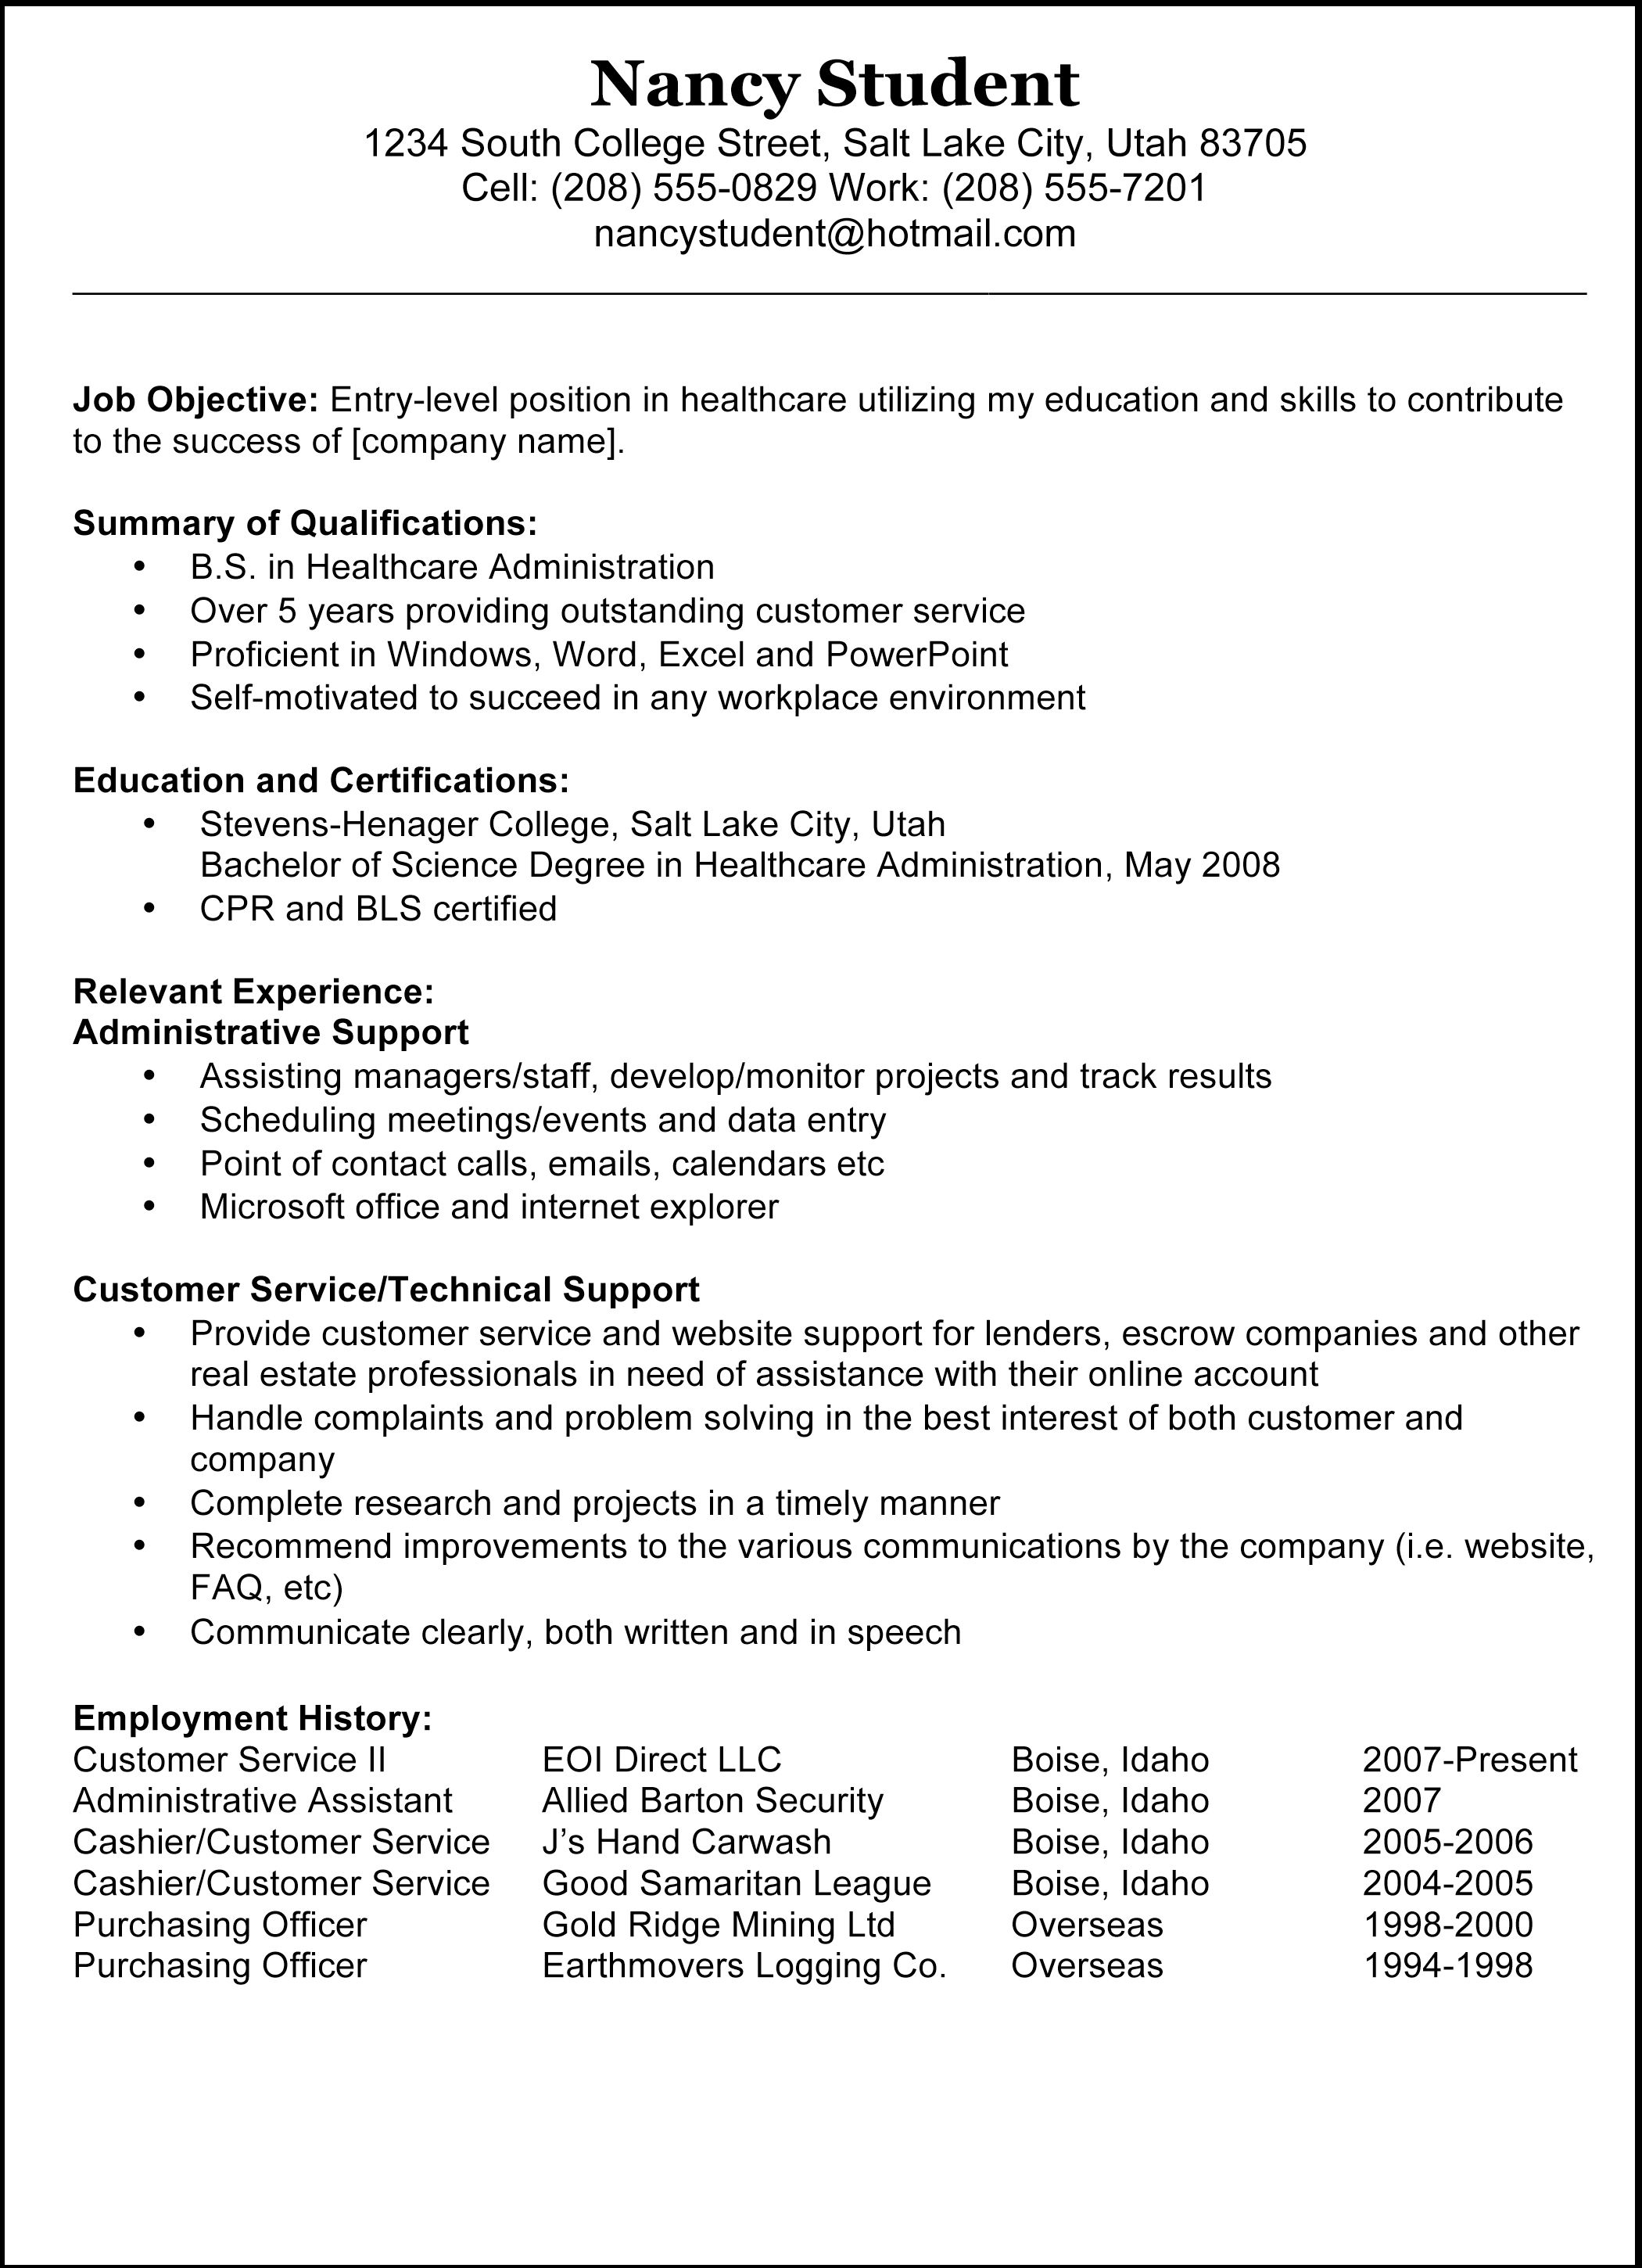 technical support specialist resume samples visualcv resume letter resume example resume summary for freshers example business - Examples Of Resumes